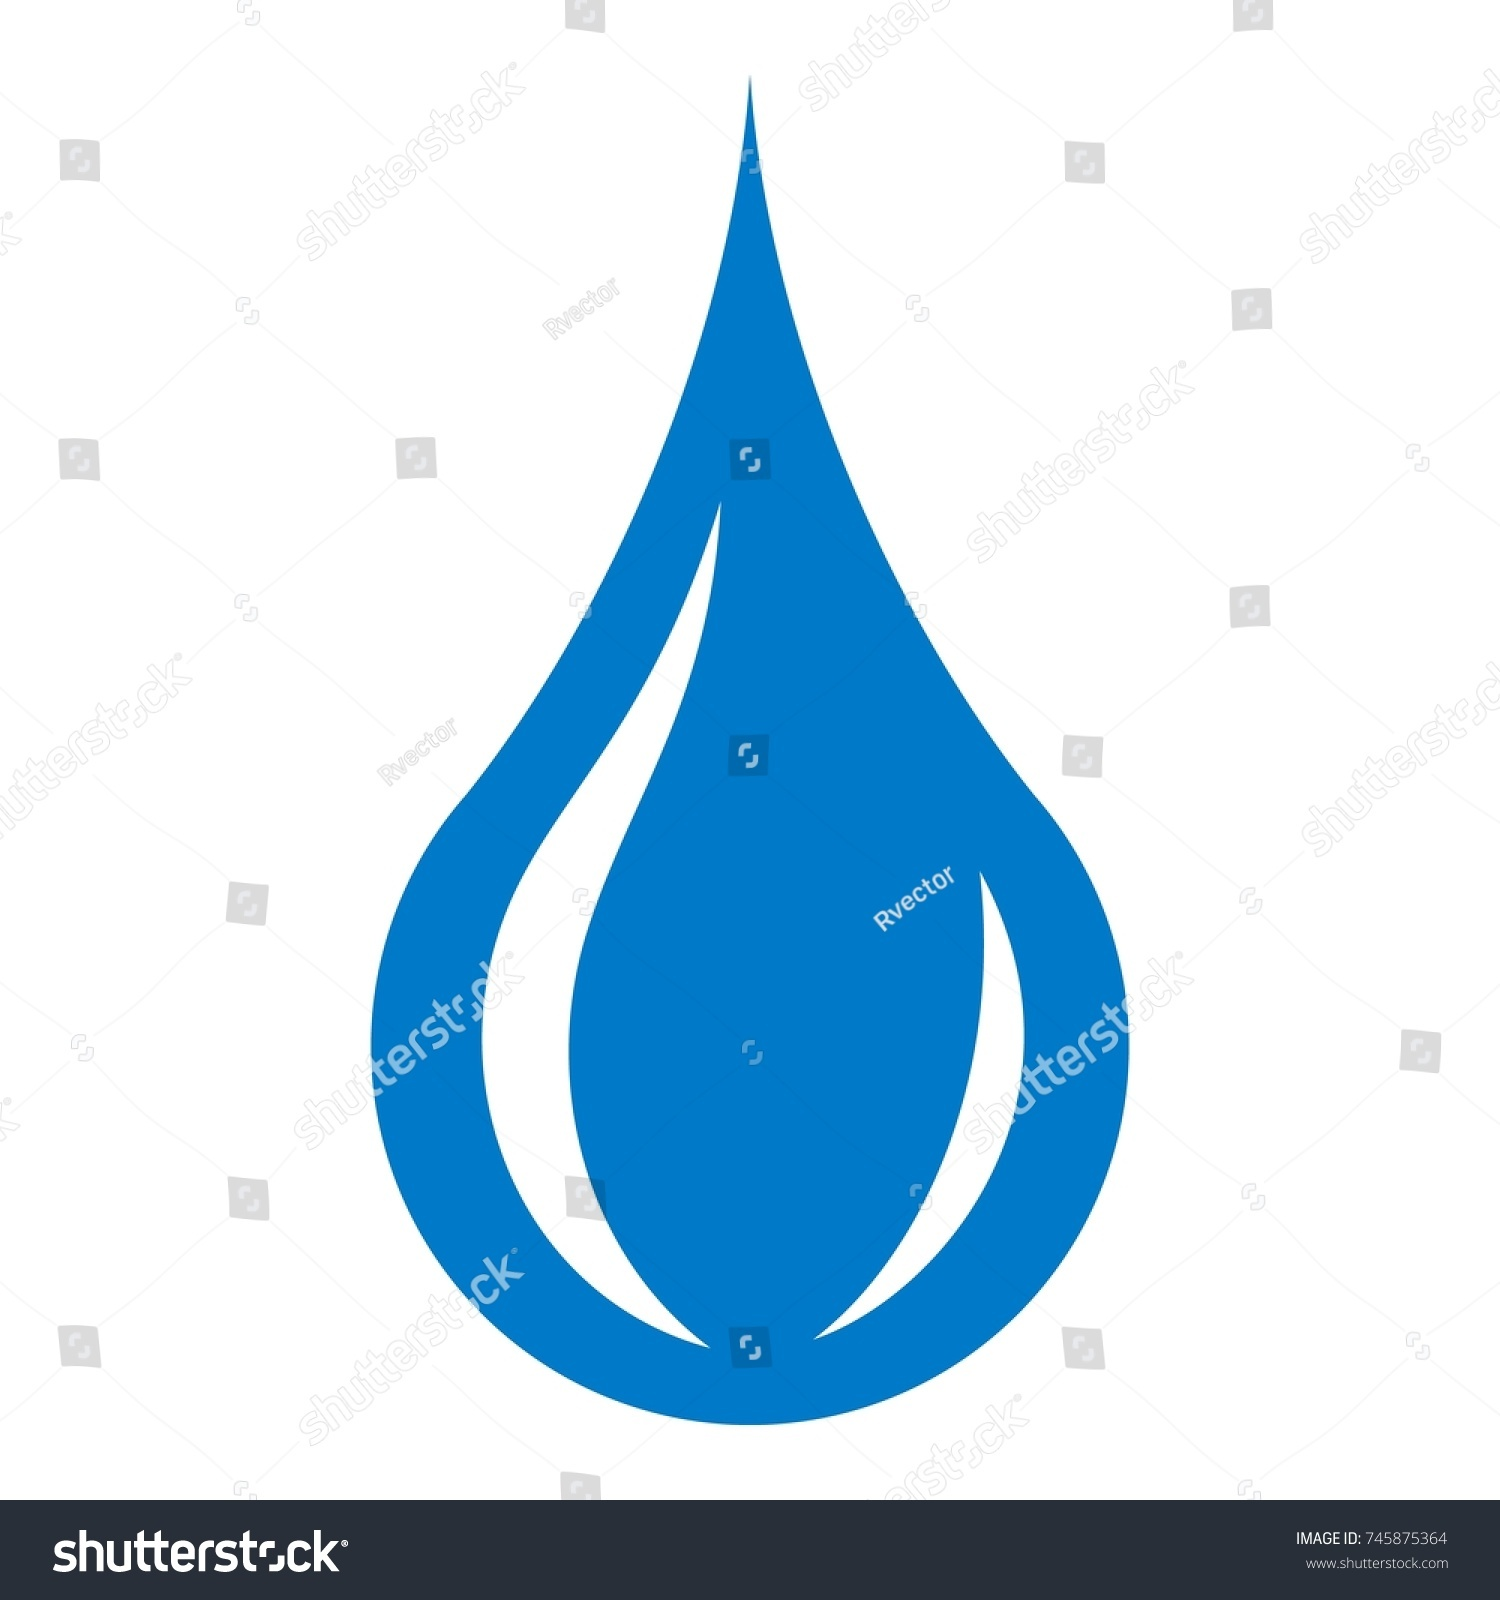 raindrop icon simple illustration raindrop vector stock vector rh shutterstock com raindrop vector free download raindrop vector art